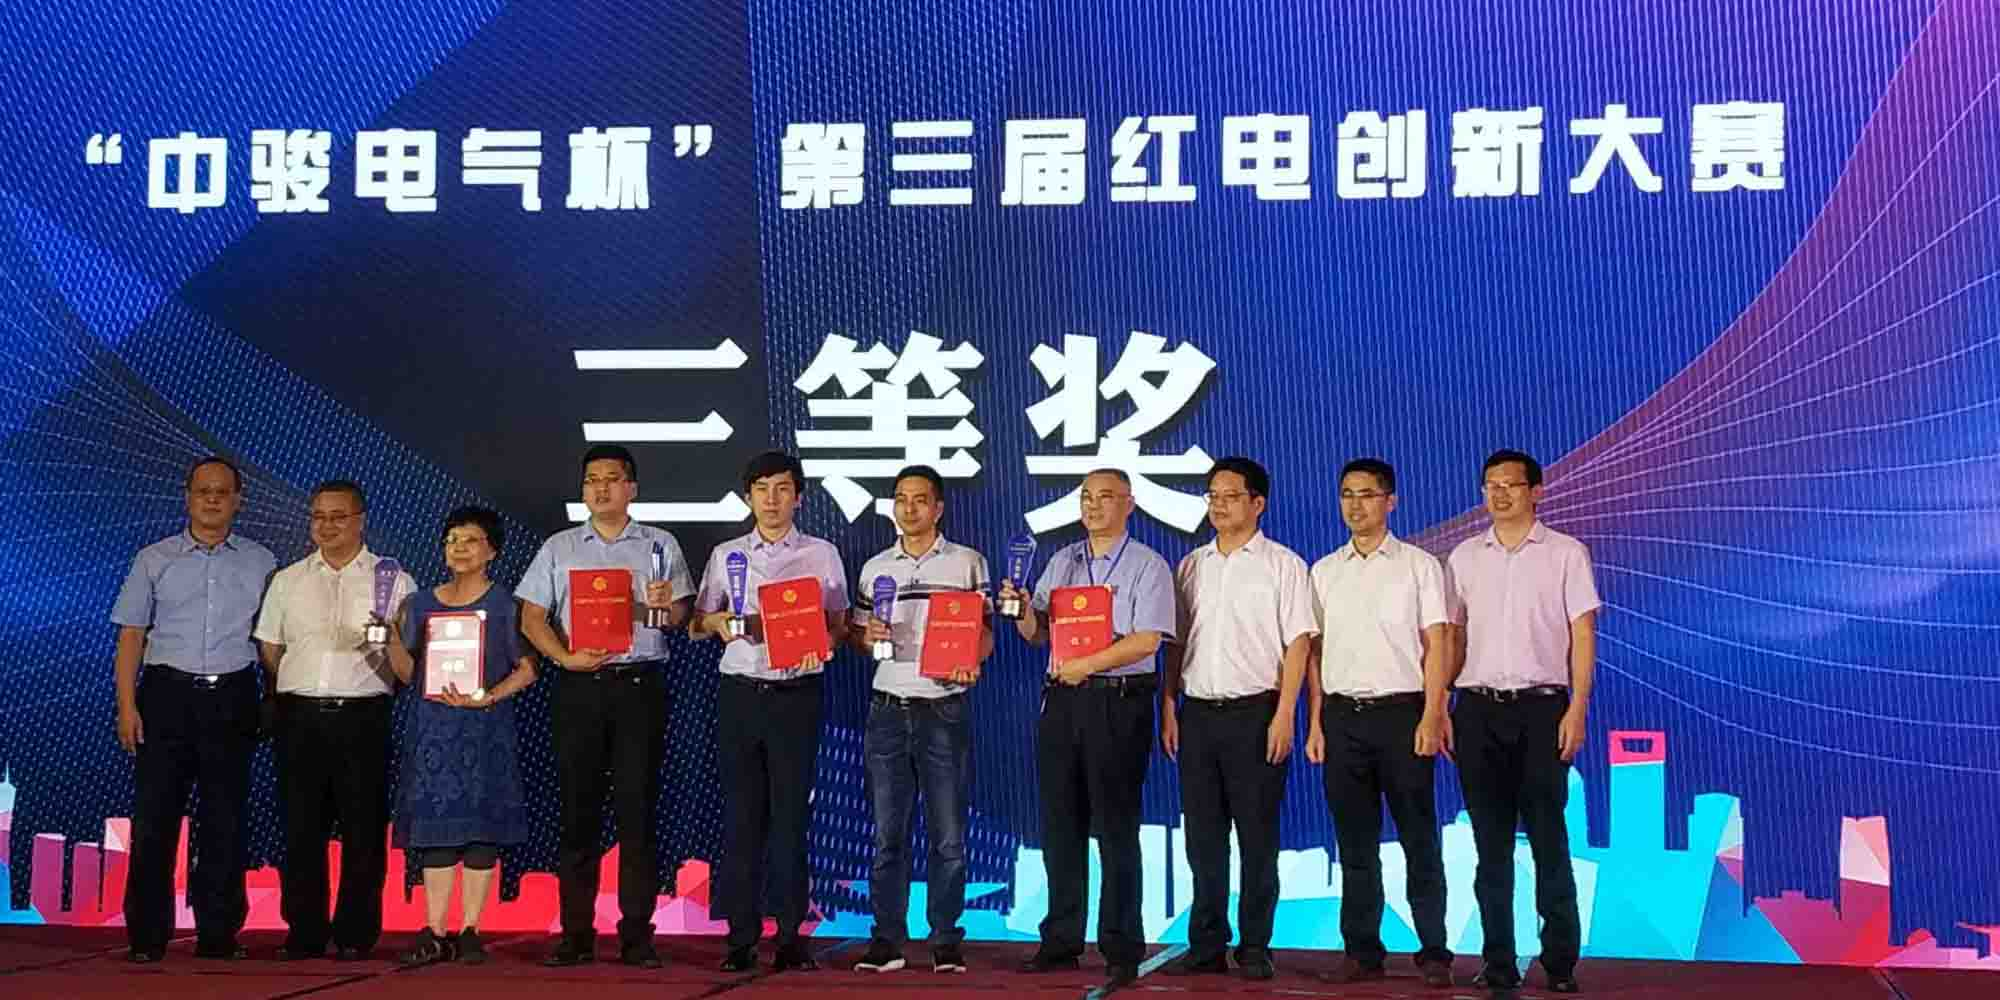 Congratulations on the company's non-polar low-voltage circuit breaker project won the third prize of the Red Power Innovation Competition and the project landing signing